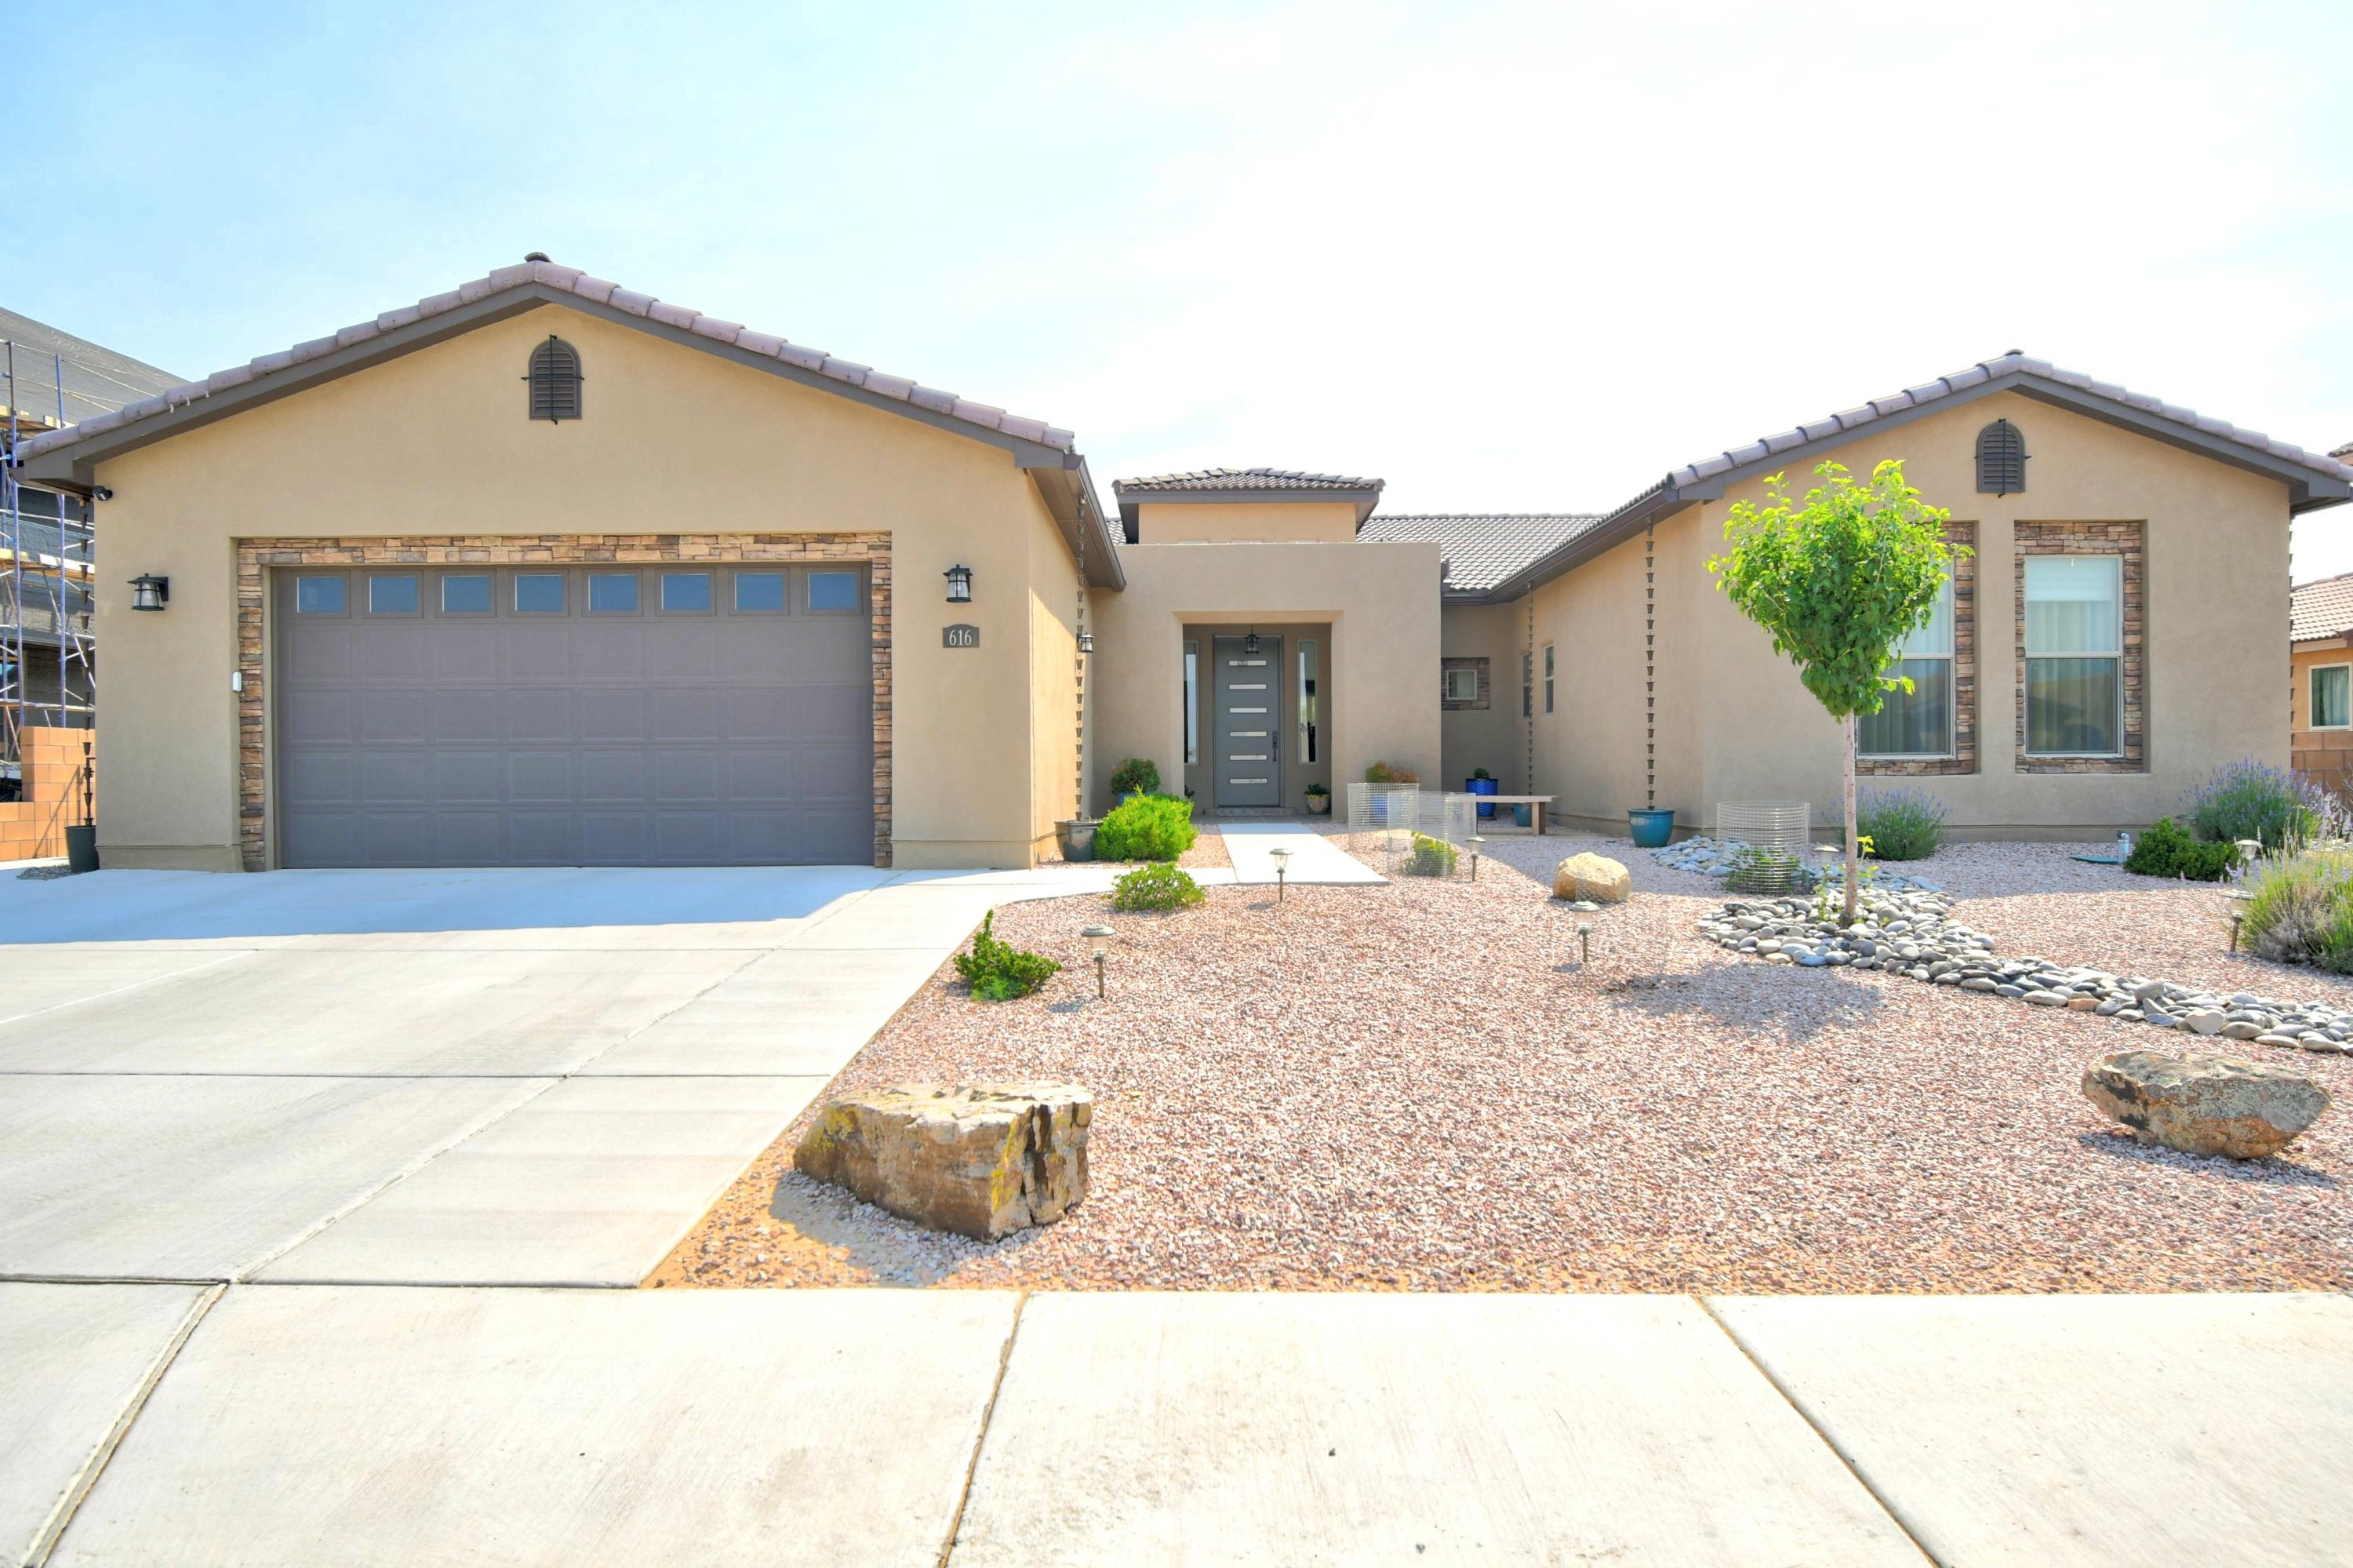 Beautiful single story custom home in the gated community of Ocotillo. Your greeted at a custom 8 ft front door. Enter into a big living room with an open floor plan with the kitchen and large breakfast nook. Enter the large Master bedroom with walk in closets for his and hers and beautiful master bath.  Master bath has 6ft tub and large shower room. In the kitchen, quartz counter tops with all stainless steal appliances and a walk in pantry. Garage has a custom 9ft door and will fit 3 cars, 2 cars in tandem. Up graded lights throughout.